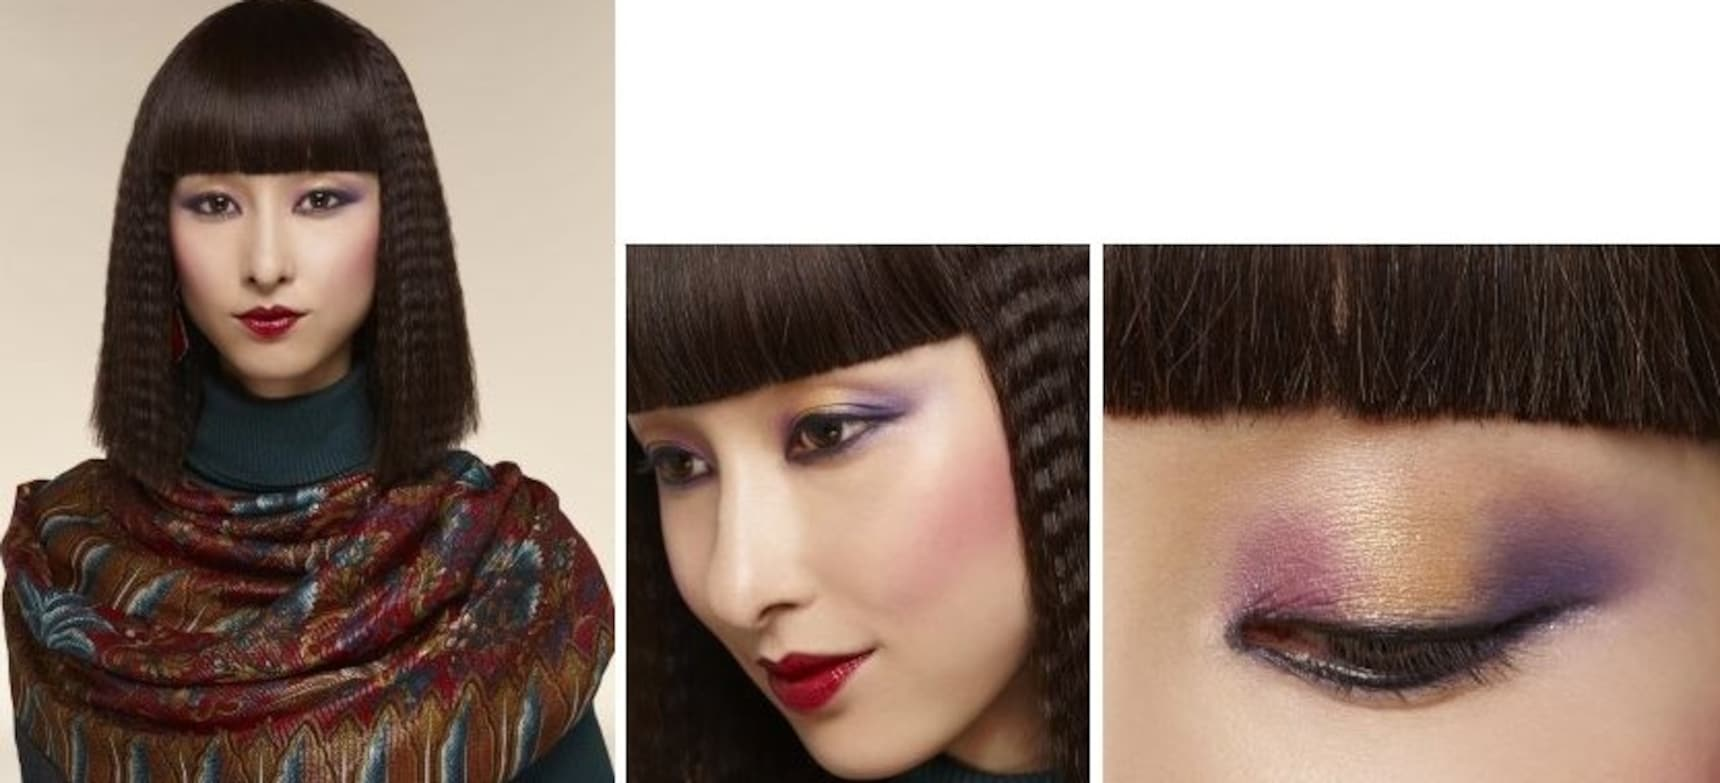 100 Years of Japanese Makeup Styles